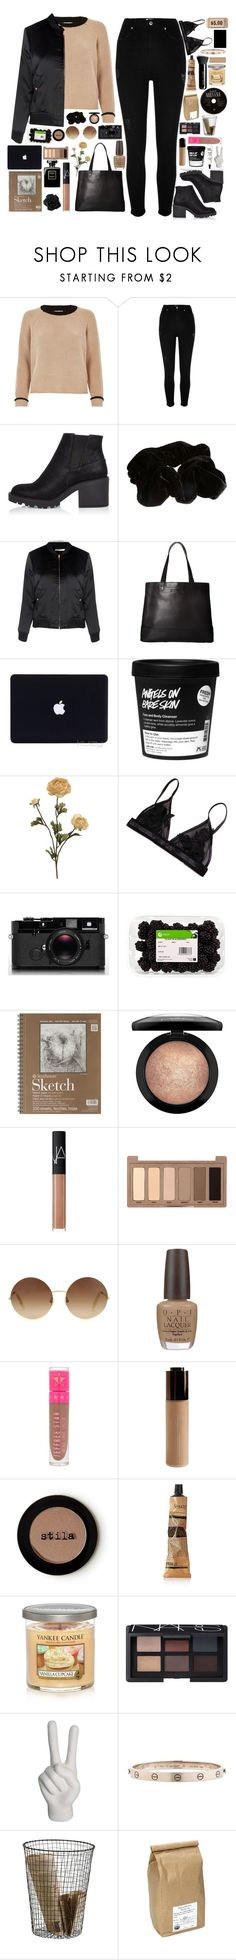 """""""S T Y L E"""" by sillyyivyy ❤ liked on Polyvore featuring River Island, Glamorous, SOREL, philosophy, Chanel, Leica, MAC Cosmetics, NARS Cosmetics, Urban Decay and Victoria Beckham"""